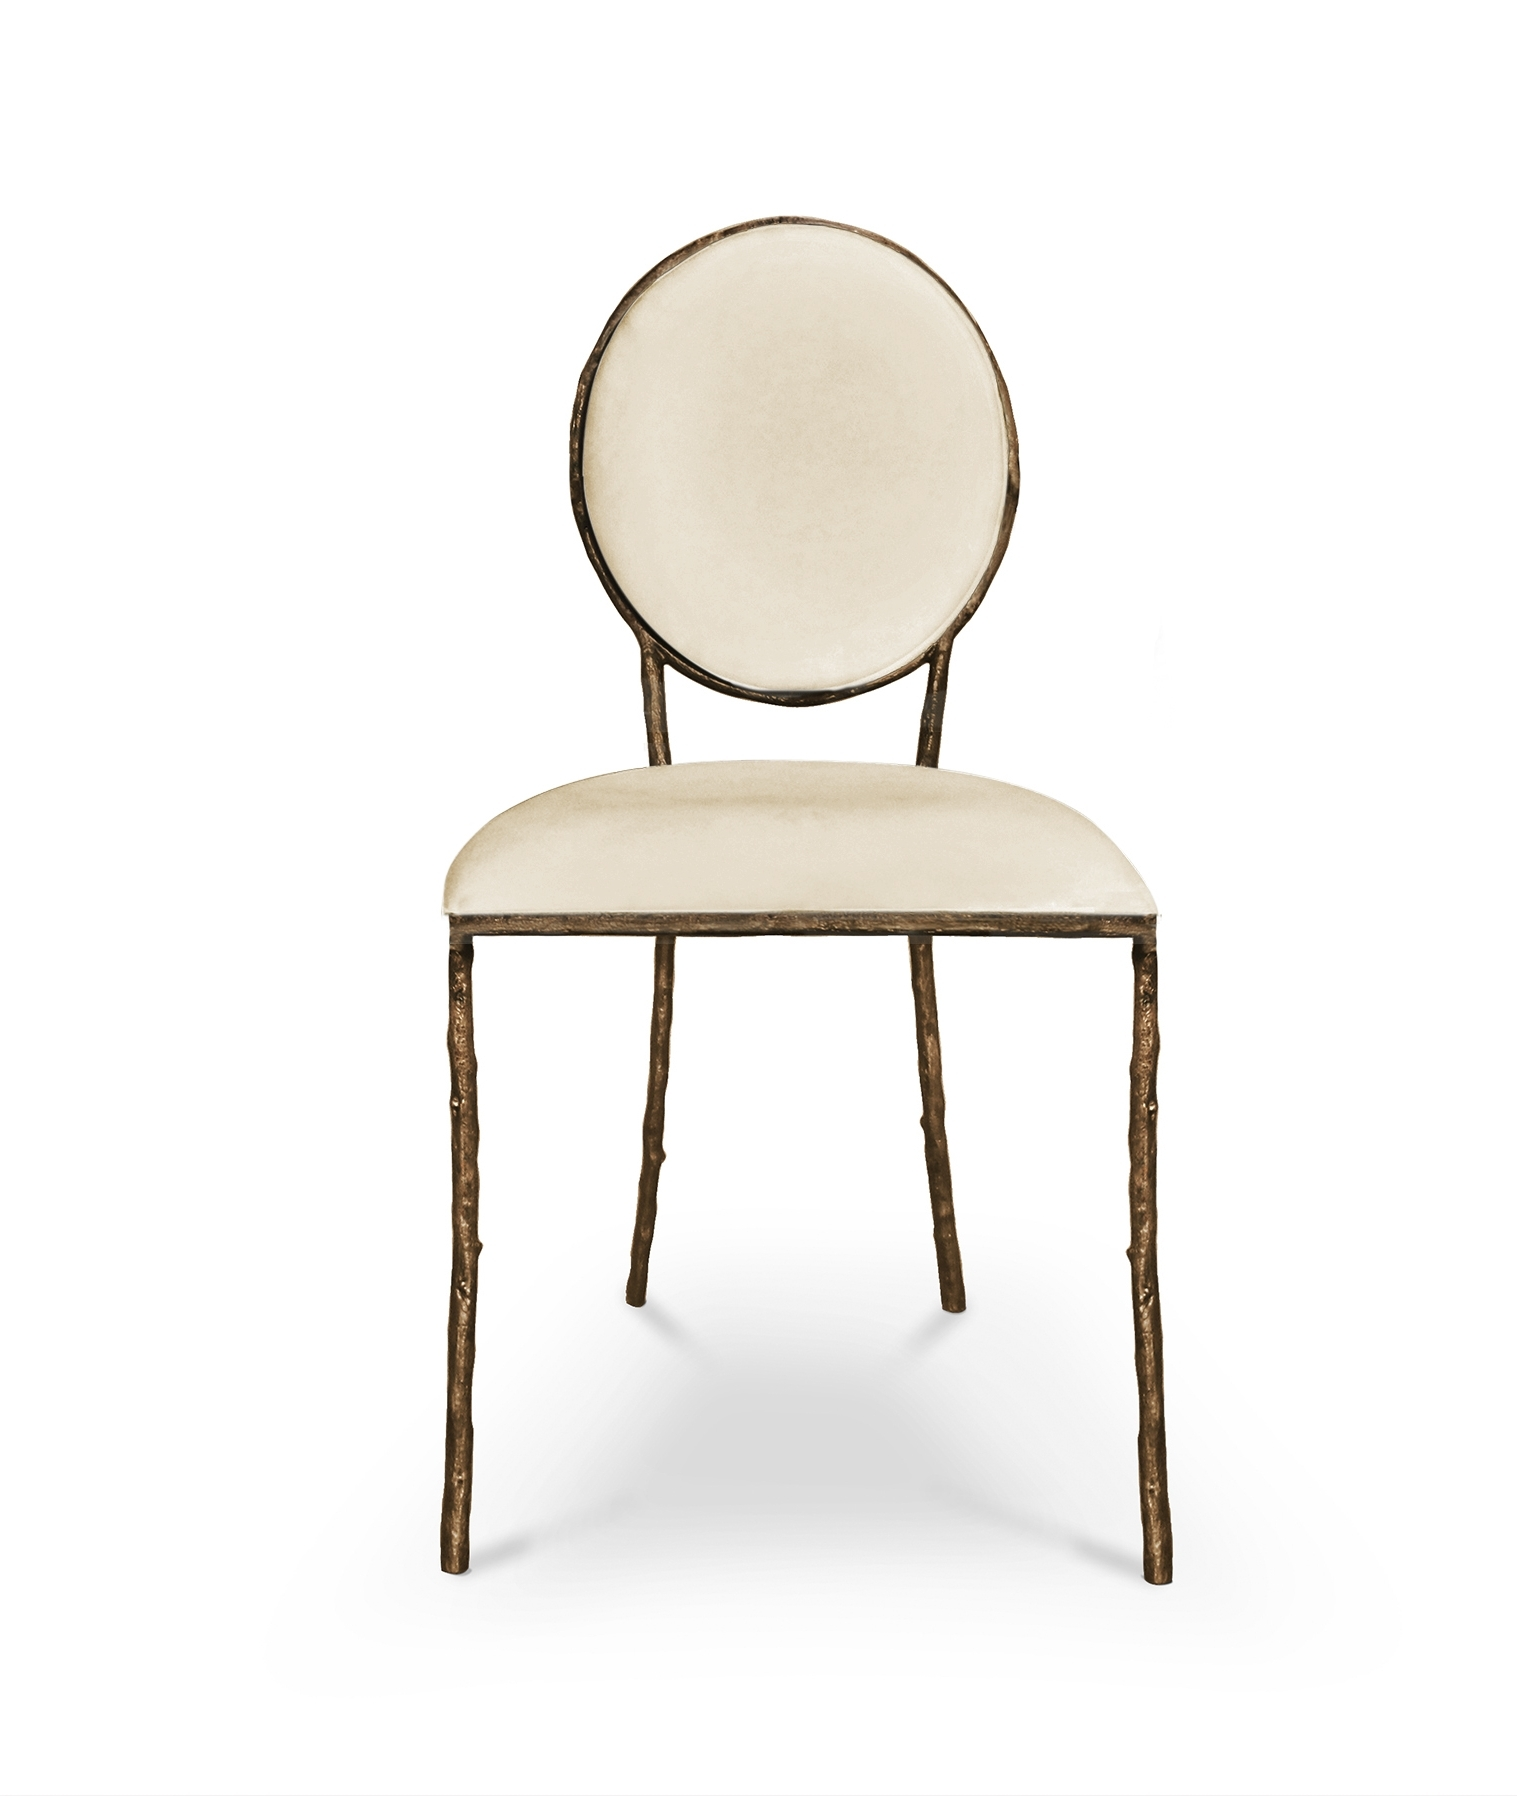 Most Recent Great Selection Of Dining Chairs To Stylish Your Dining Room Throughout Stylish Dining Chairs (View 9 of 25)